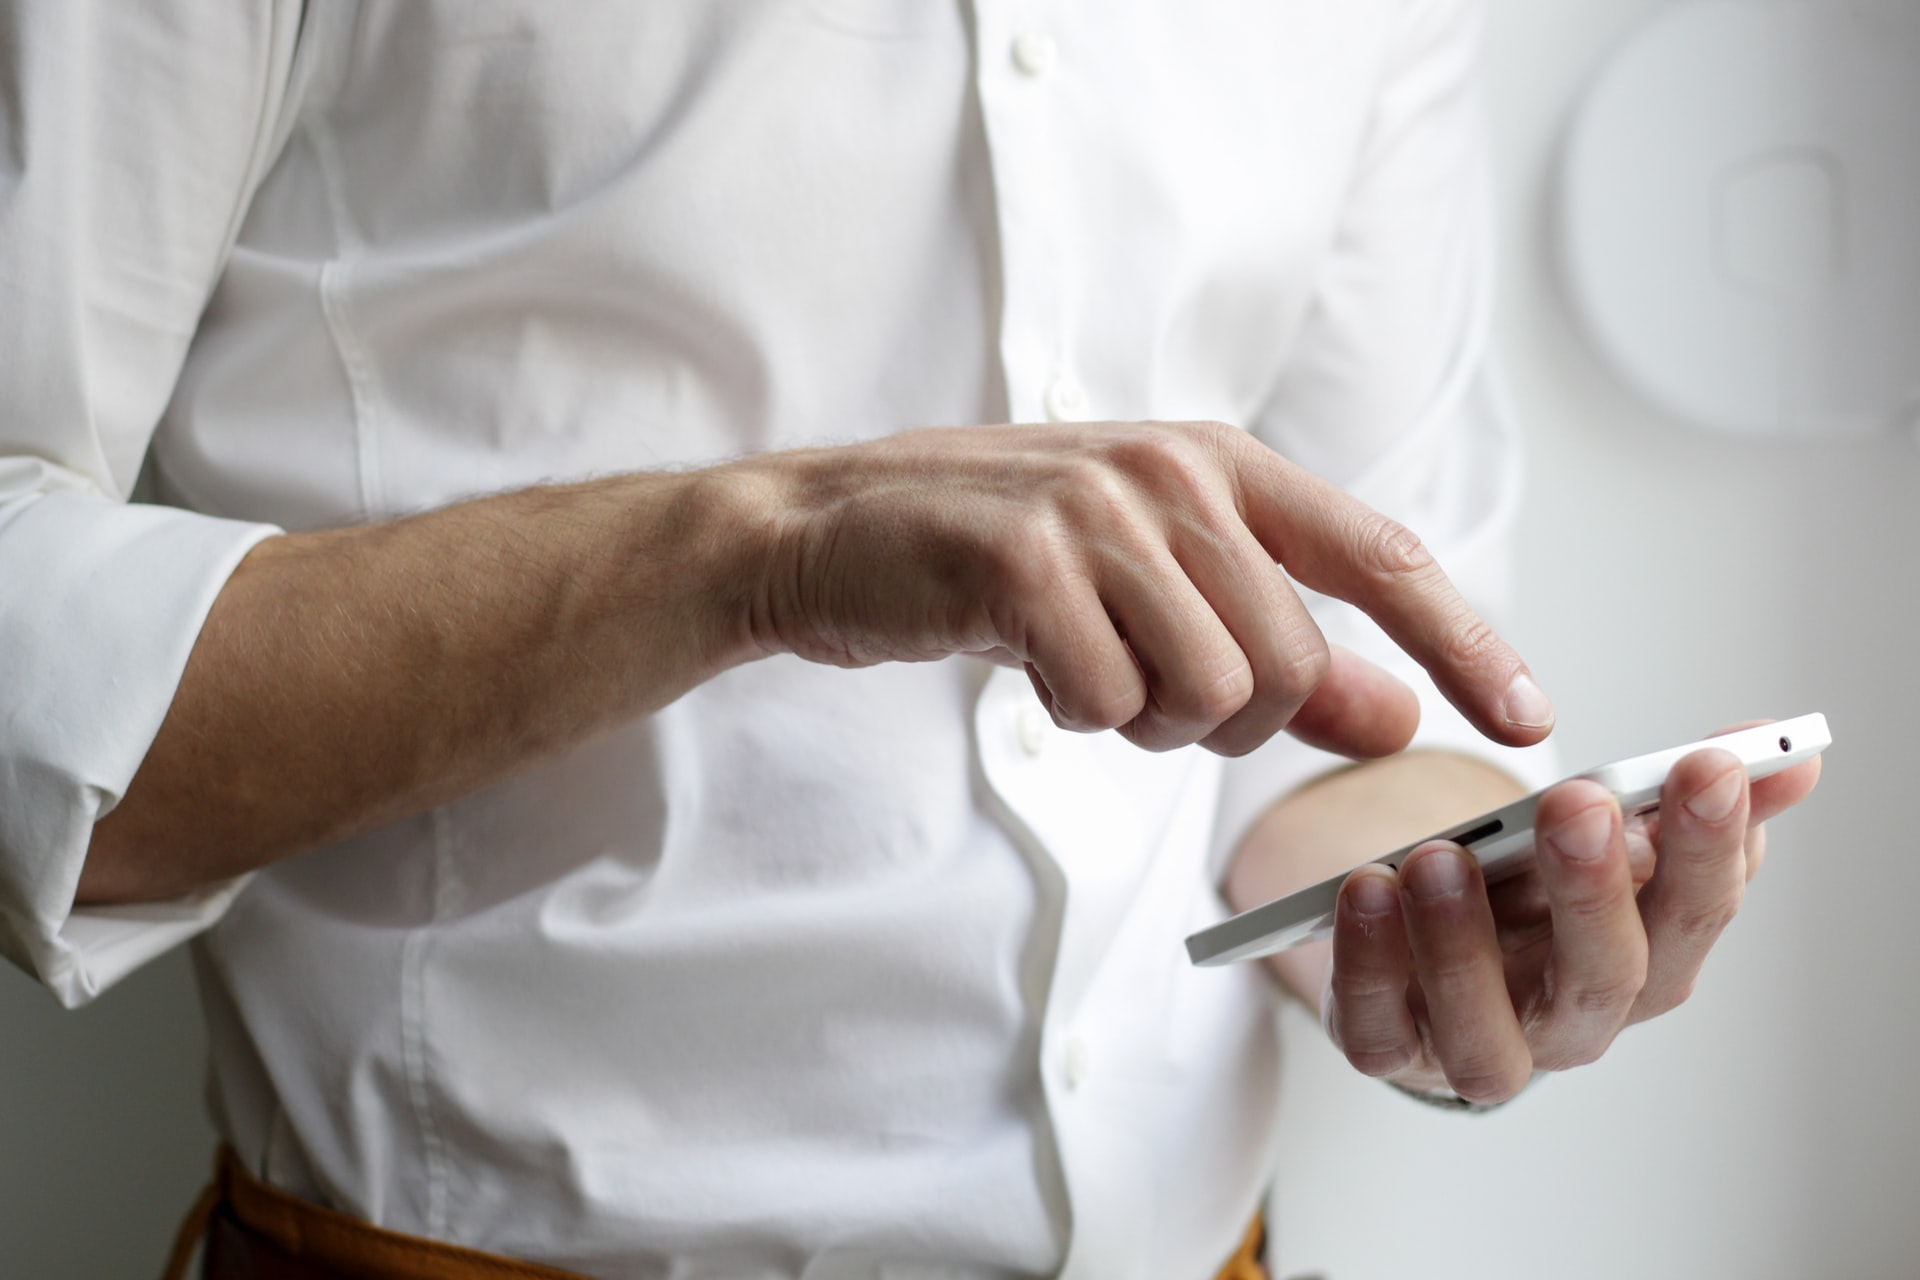 Man with a smartphone in a hands